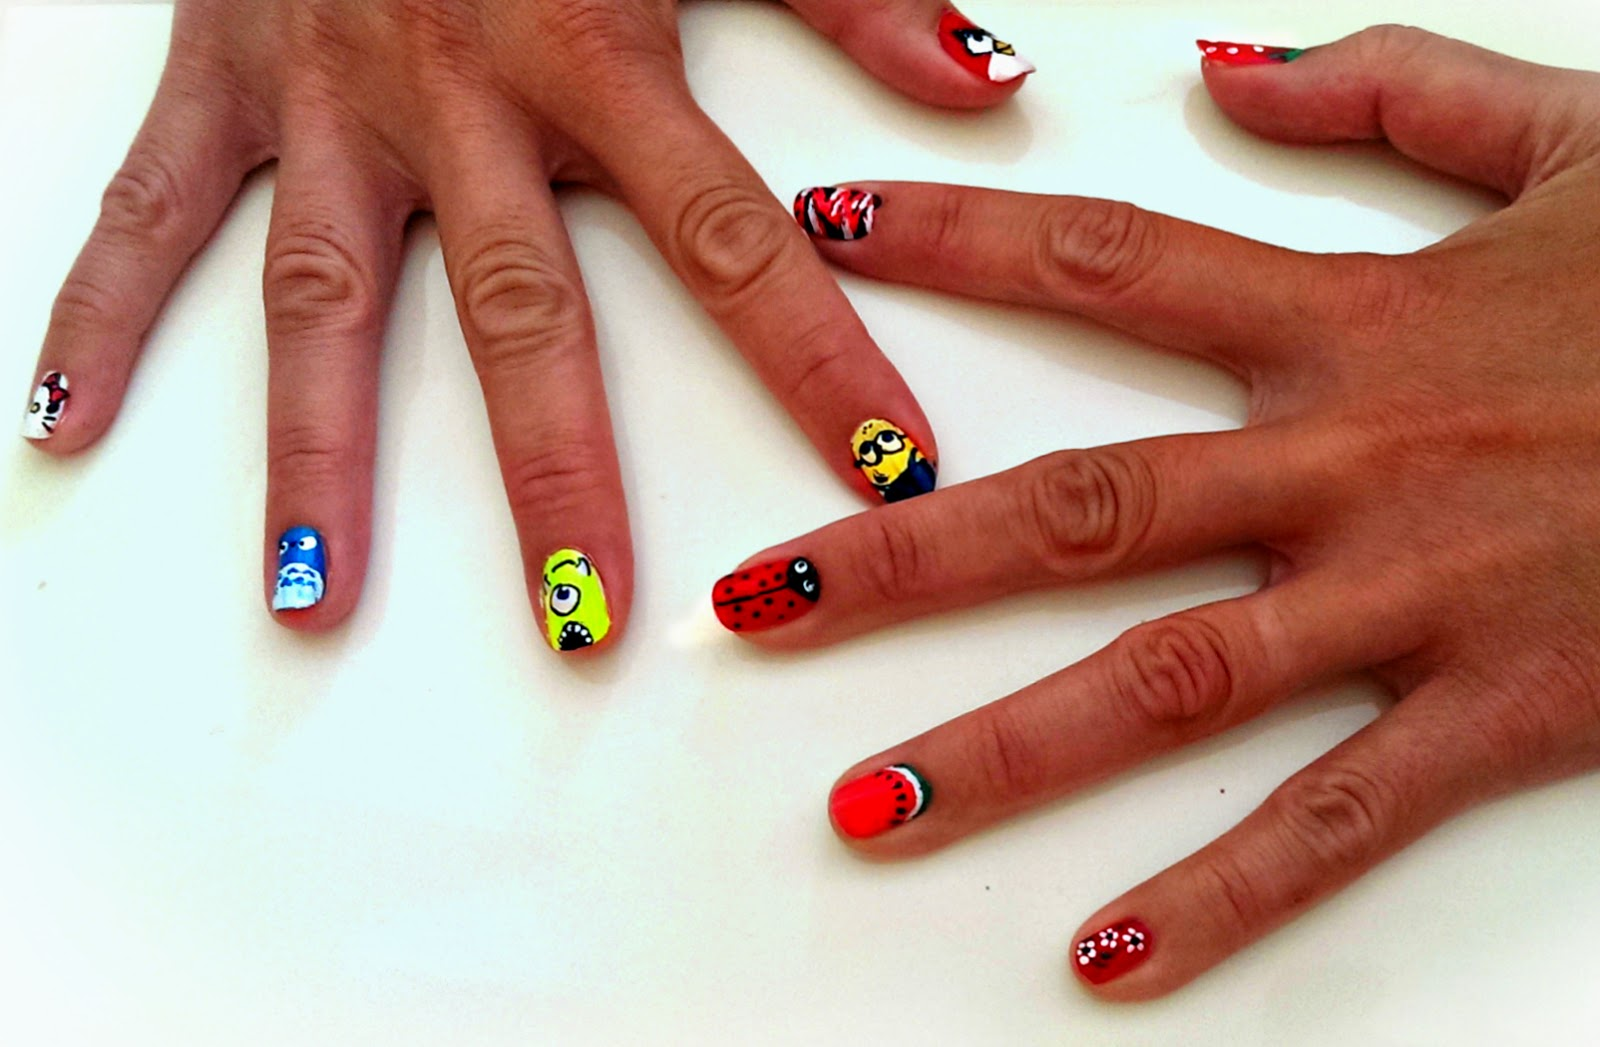 Bonggamom finds hot designs hot designs nail art prinsesfo Gallery